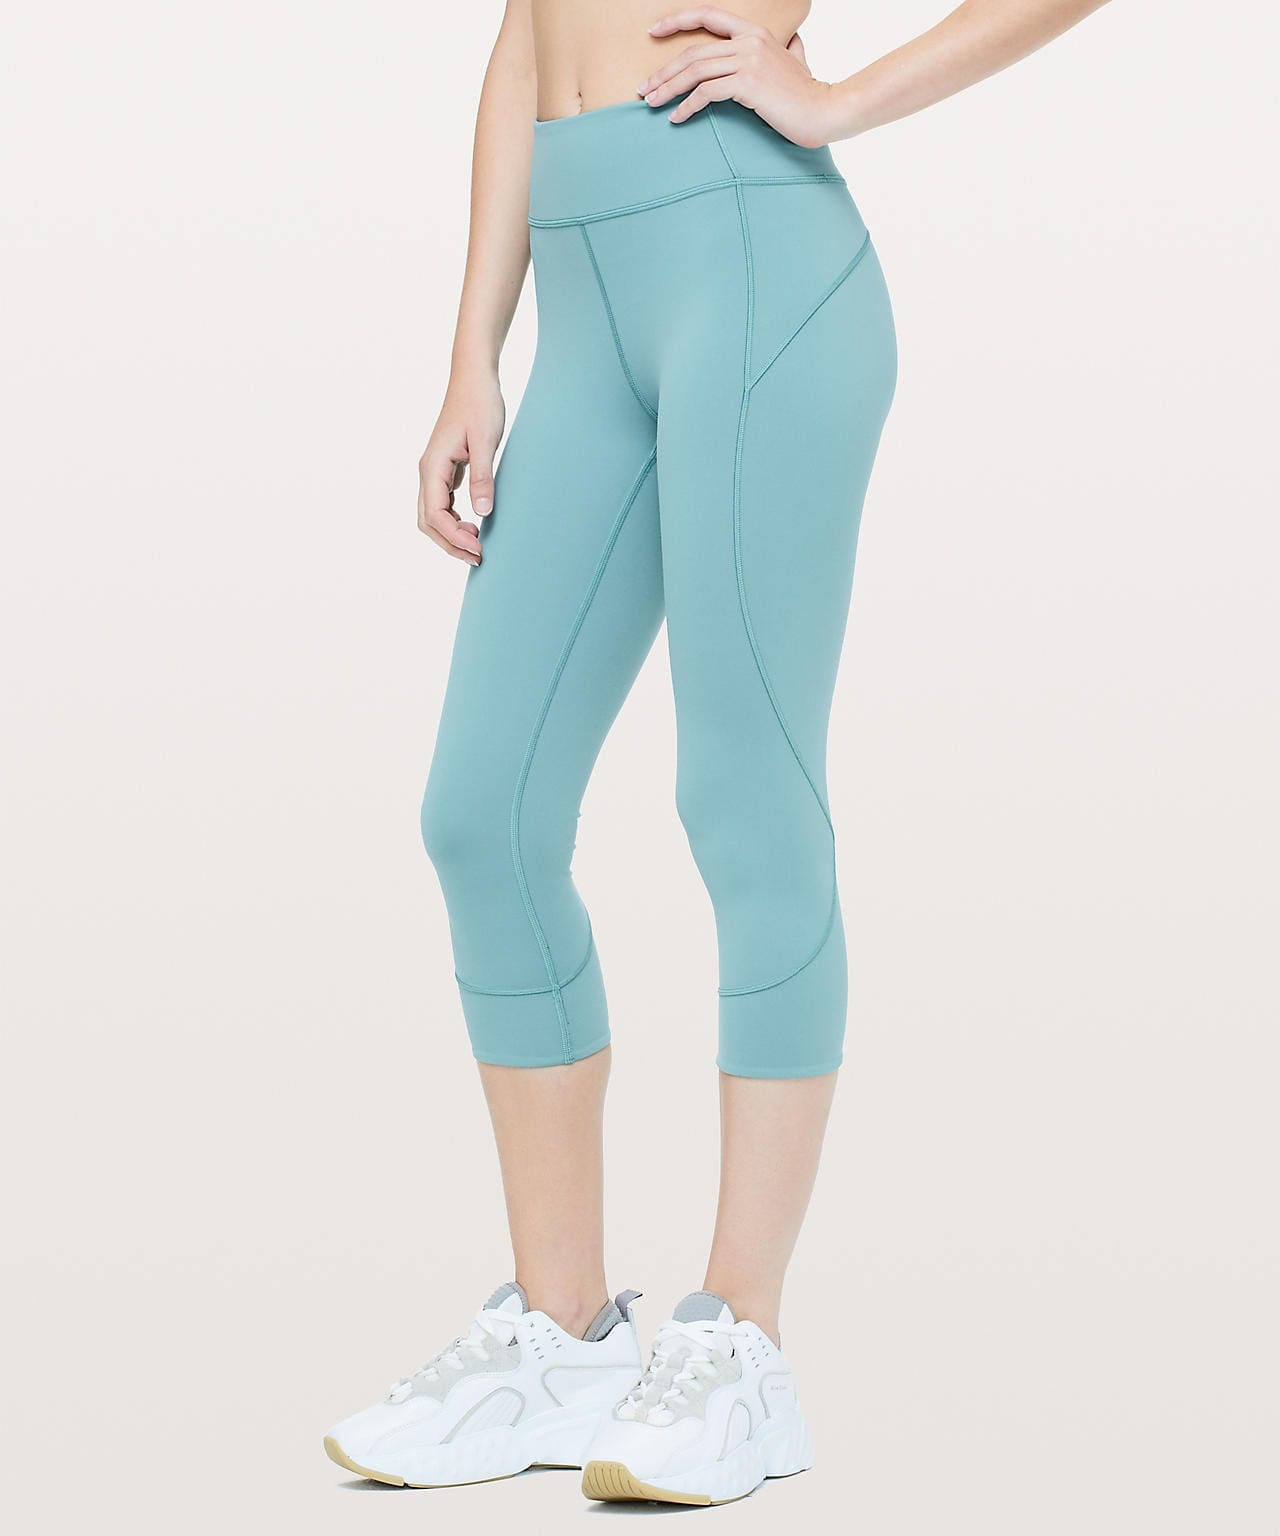 In Movement Crop, Lululemon